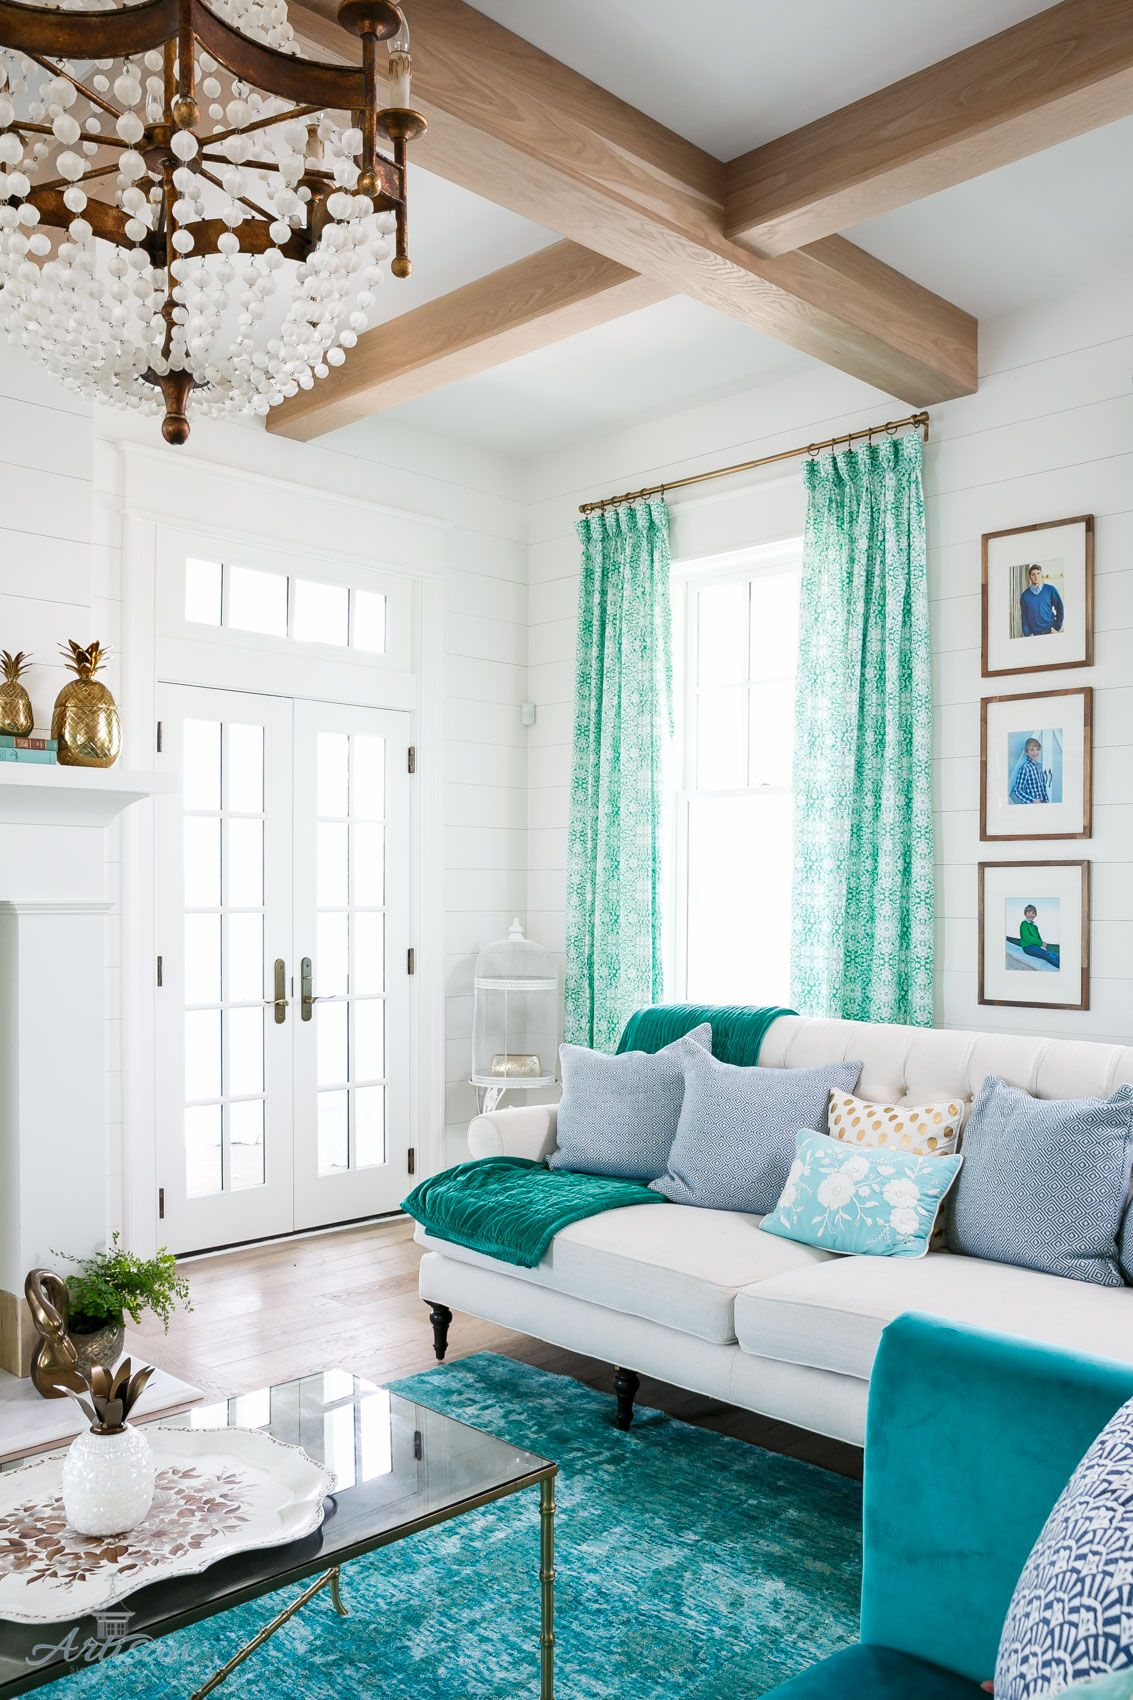 living room in blue%0A Shades of blue in this living room design with wooden ceilings beams    Artisan Signature Homes